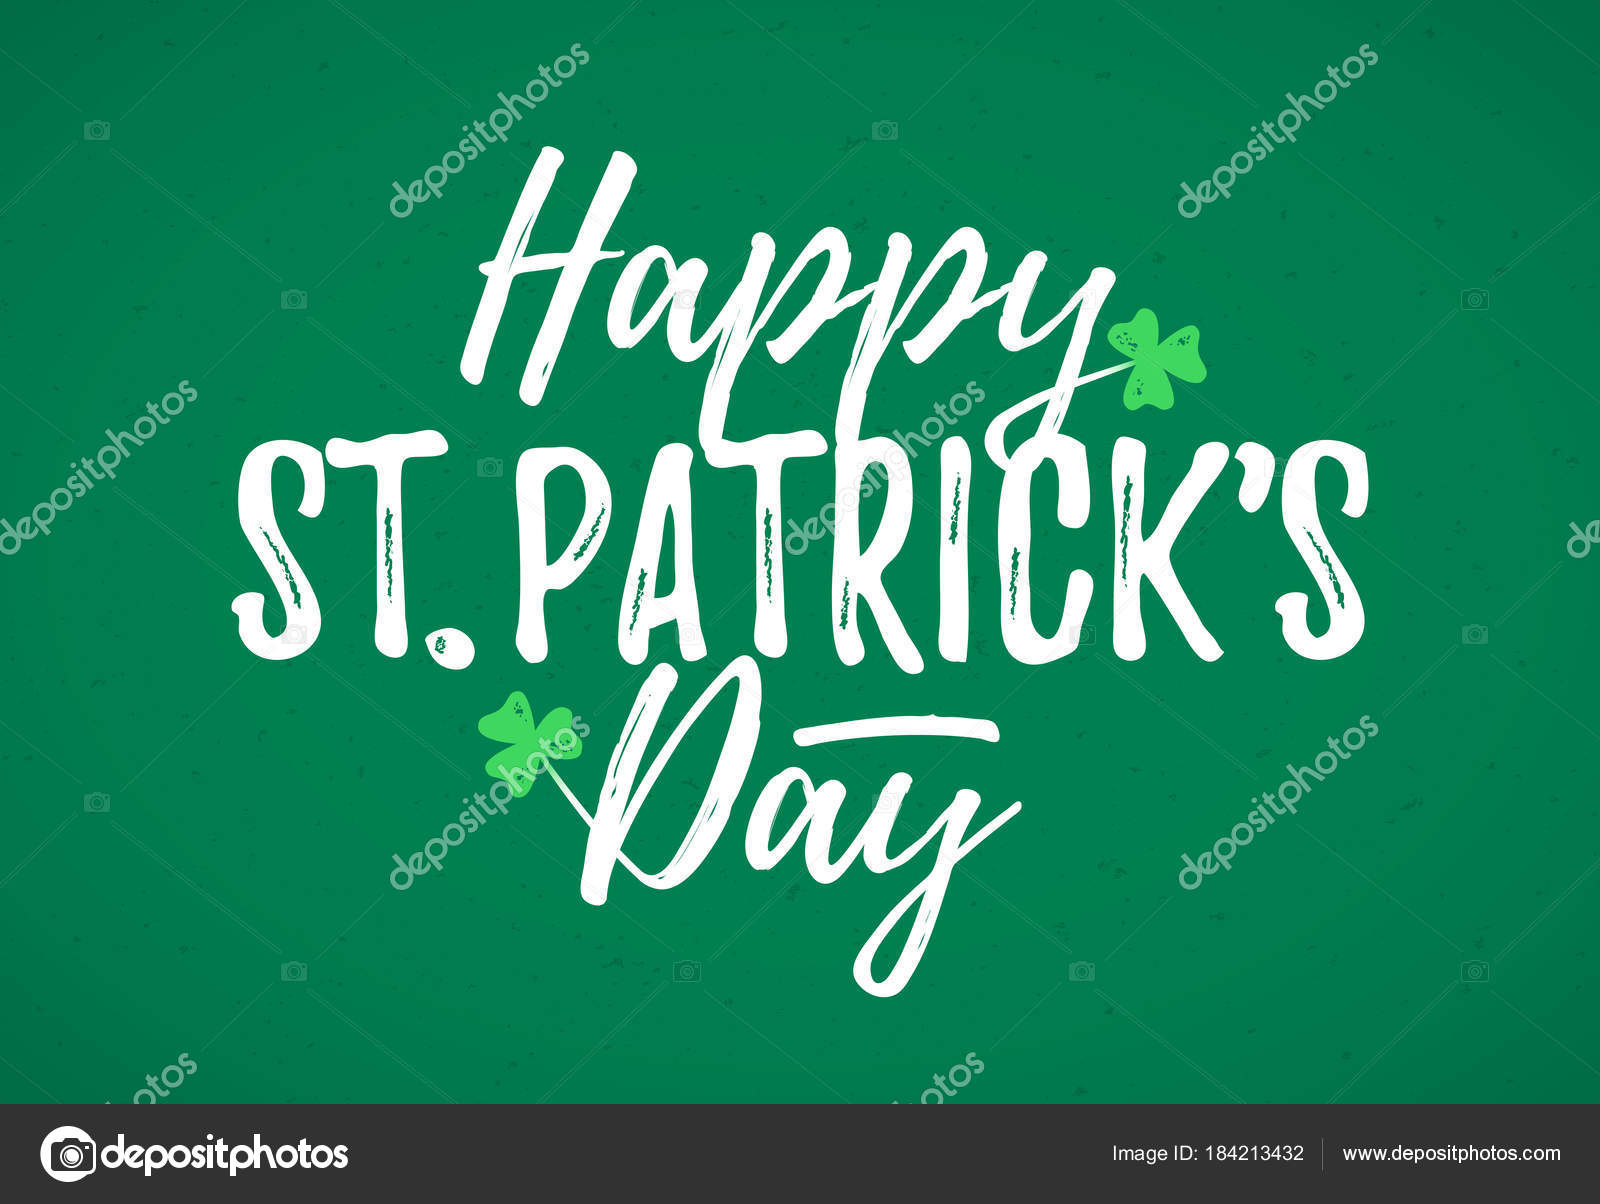 St patricks day greeting card stock vector alhovik 184213432 happy st patricks day greeting card 17 march feast of st patrick handdrawn dry brush style lettering vector by alhovik kristyandbryce Choice Image